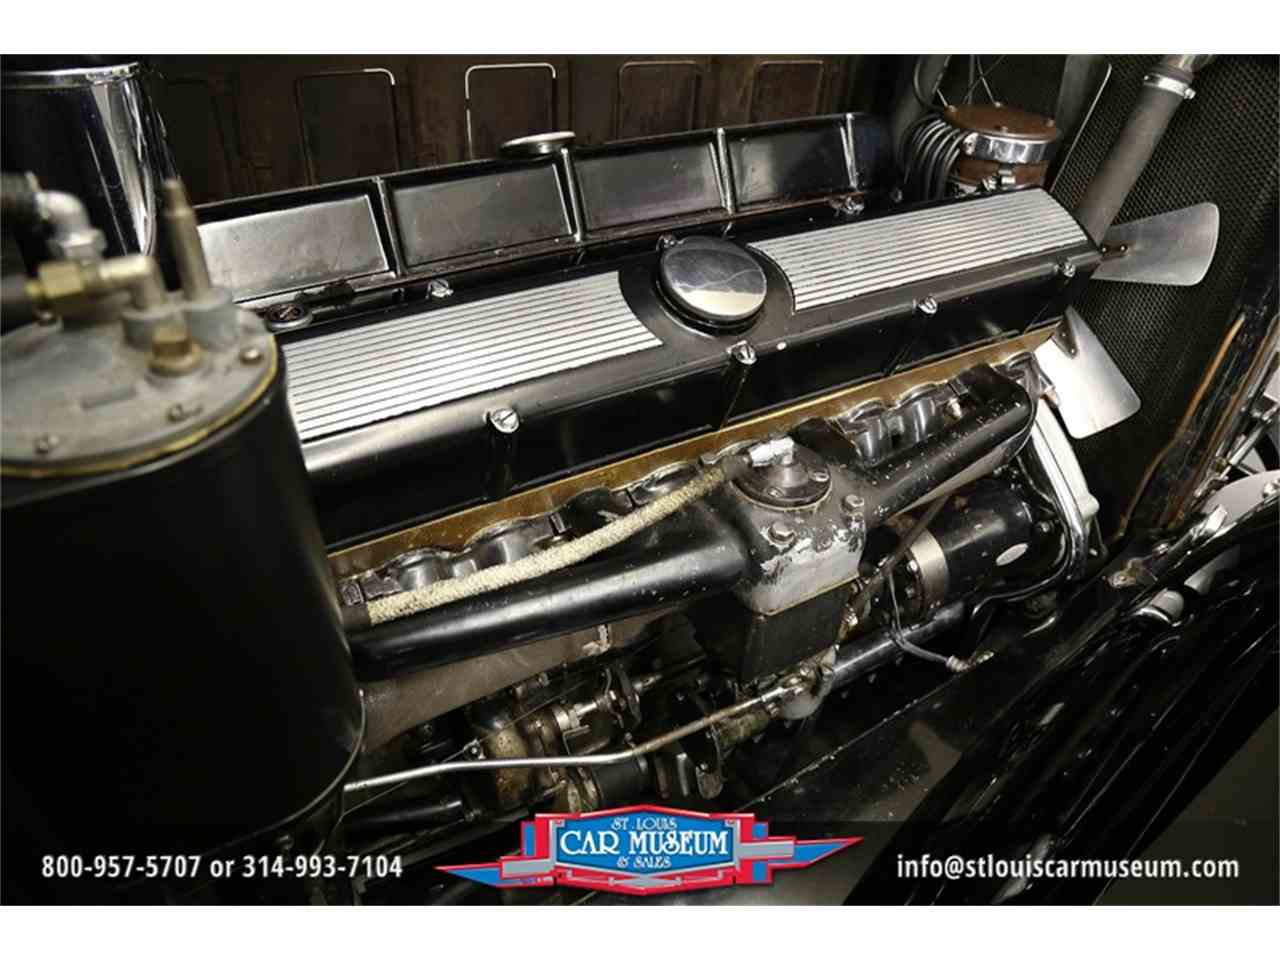 Large Picture of 1931 Cadillac V-16 Madam X Landau Sedan located in St. Louis Missouri - $374,900.00 Offered by St. Louis Car Museum - JSU3